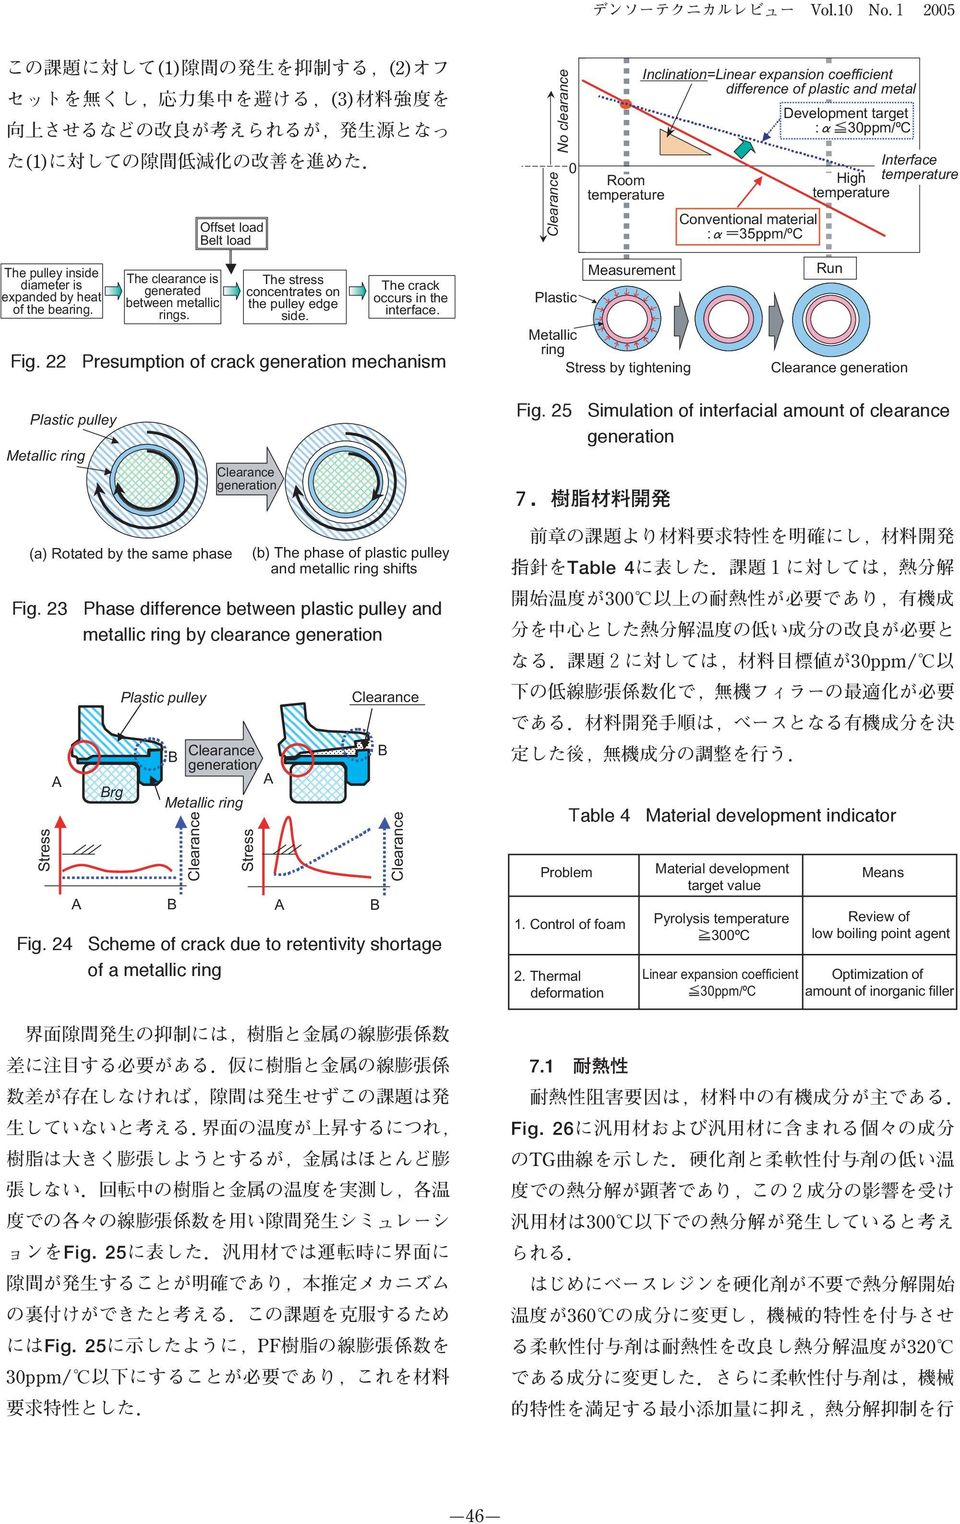 22 Presumption of crack generation mechanism No clearance Plastic Room Measurement Metallic ring Stress by tightening Inclination=Linear expansion coefficient difference of plastic and metal